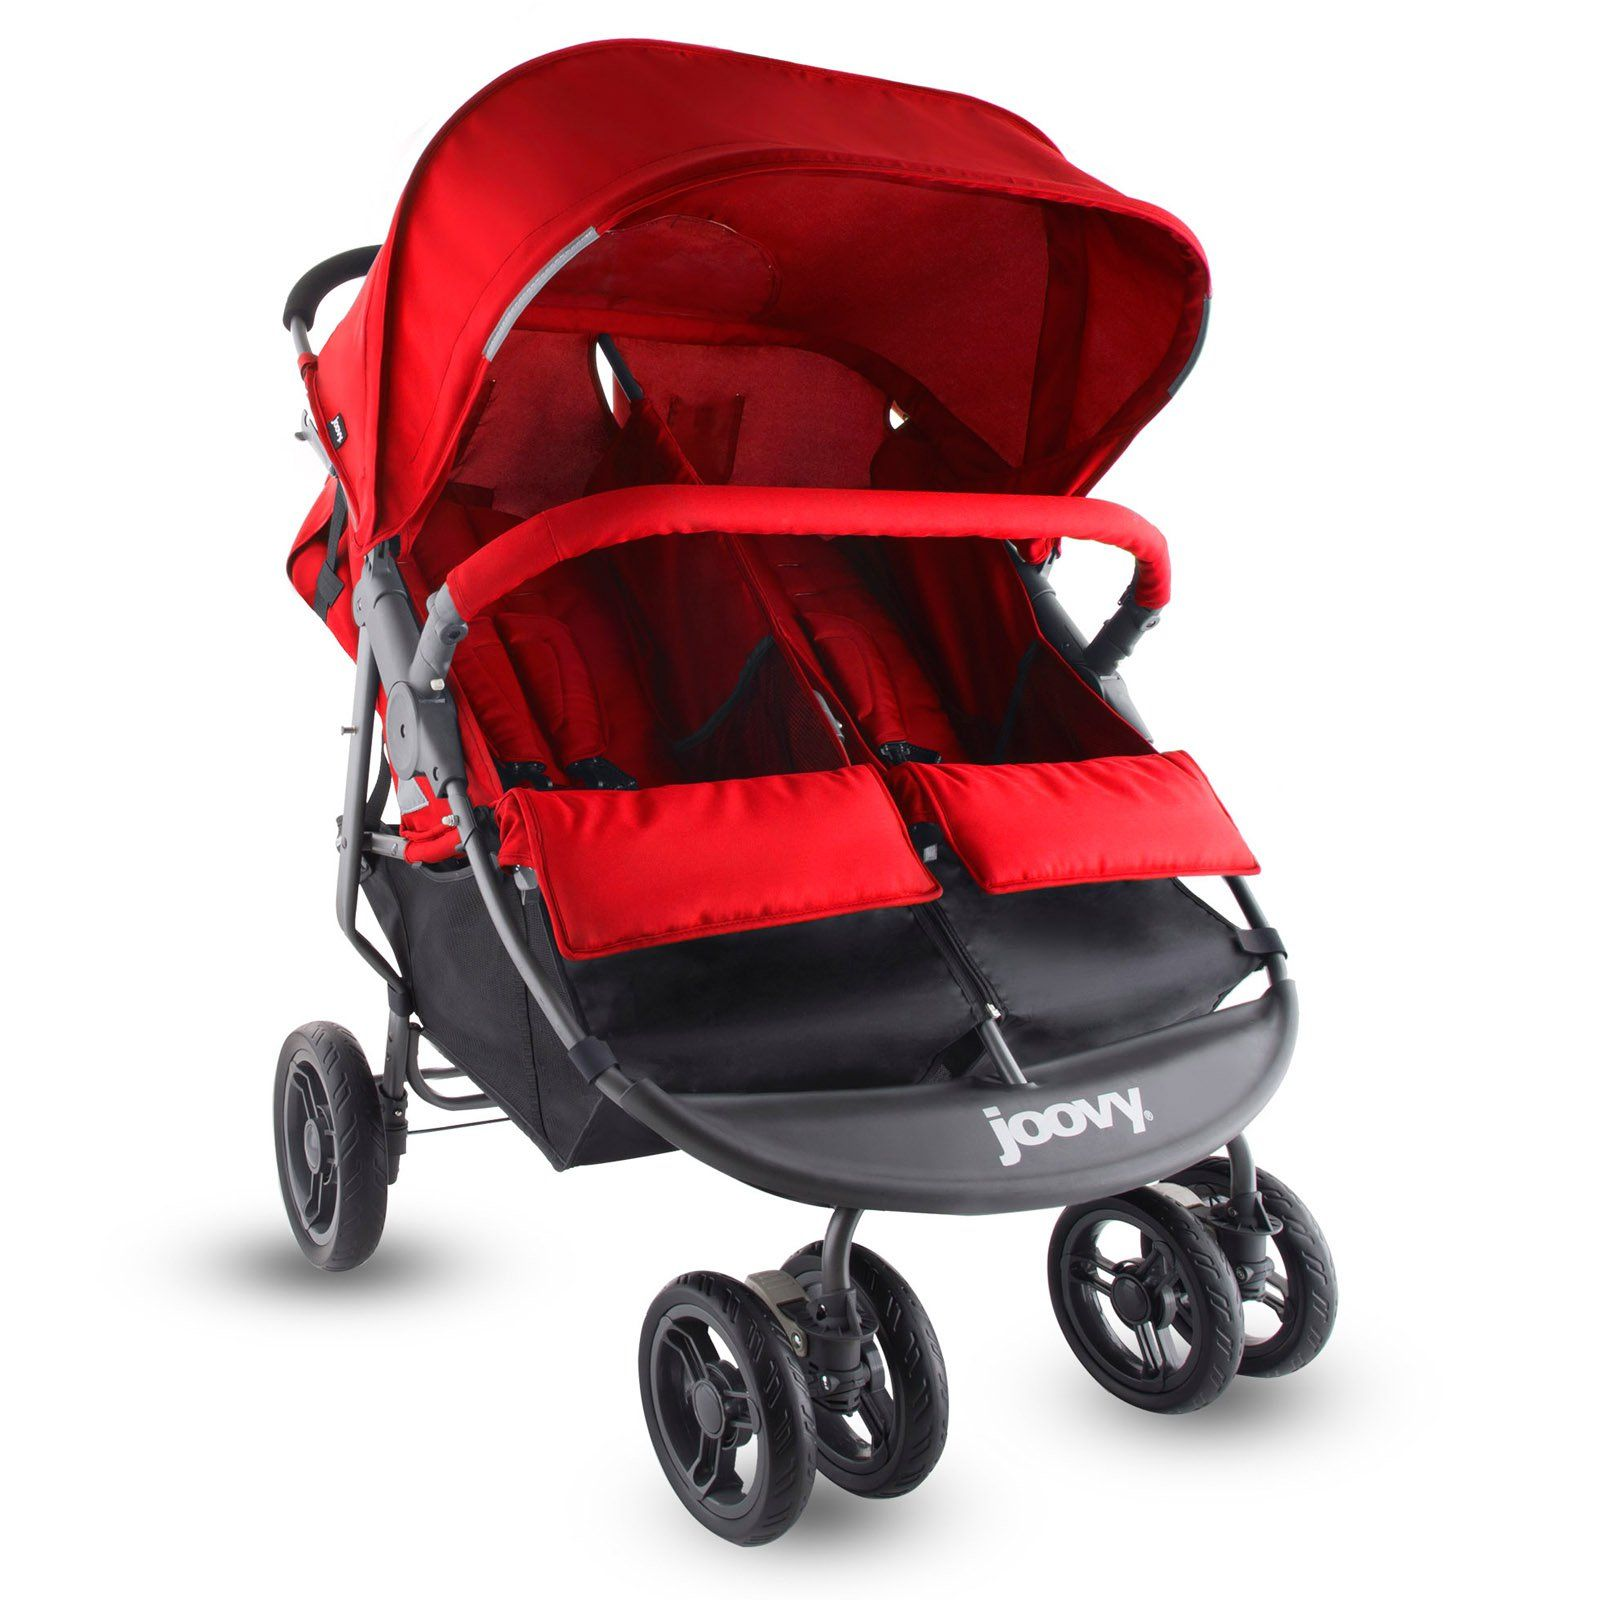 Joovy ScooterX2 Double Stroller Red Baby strollers